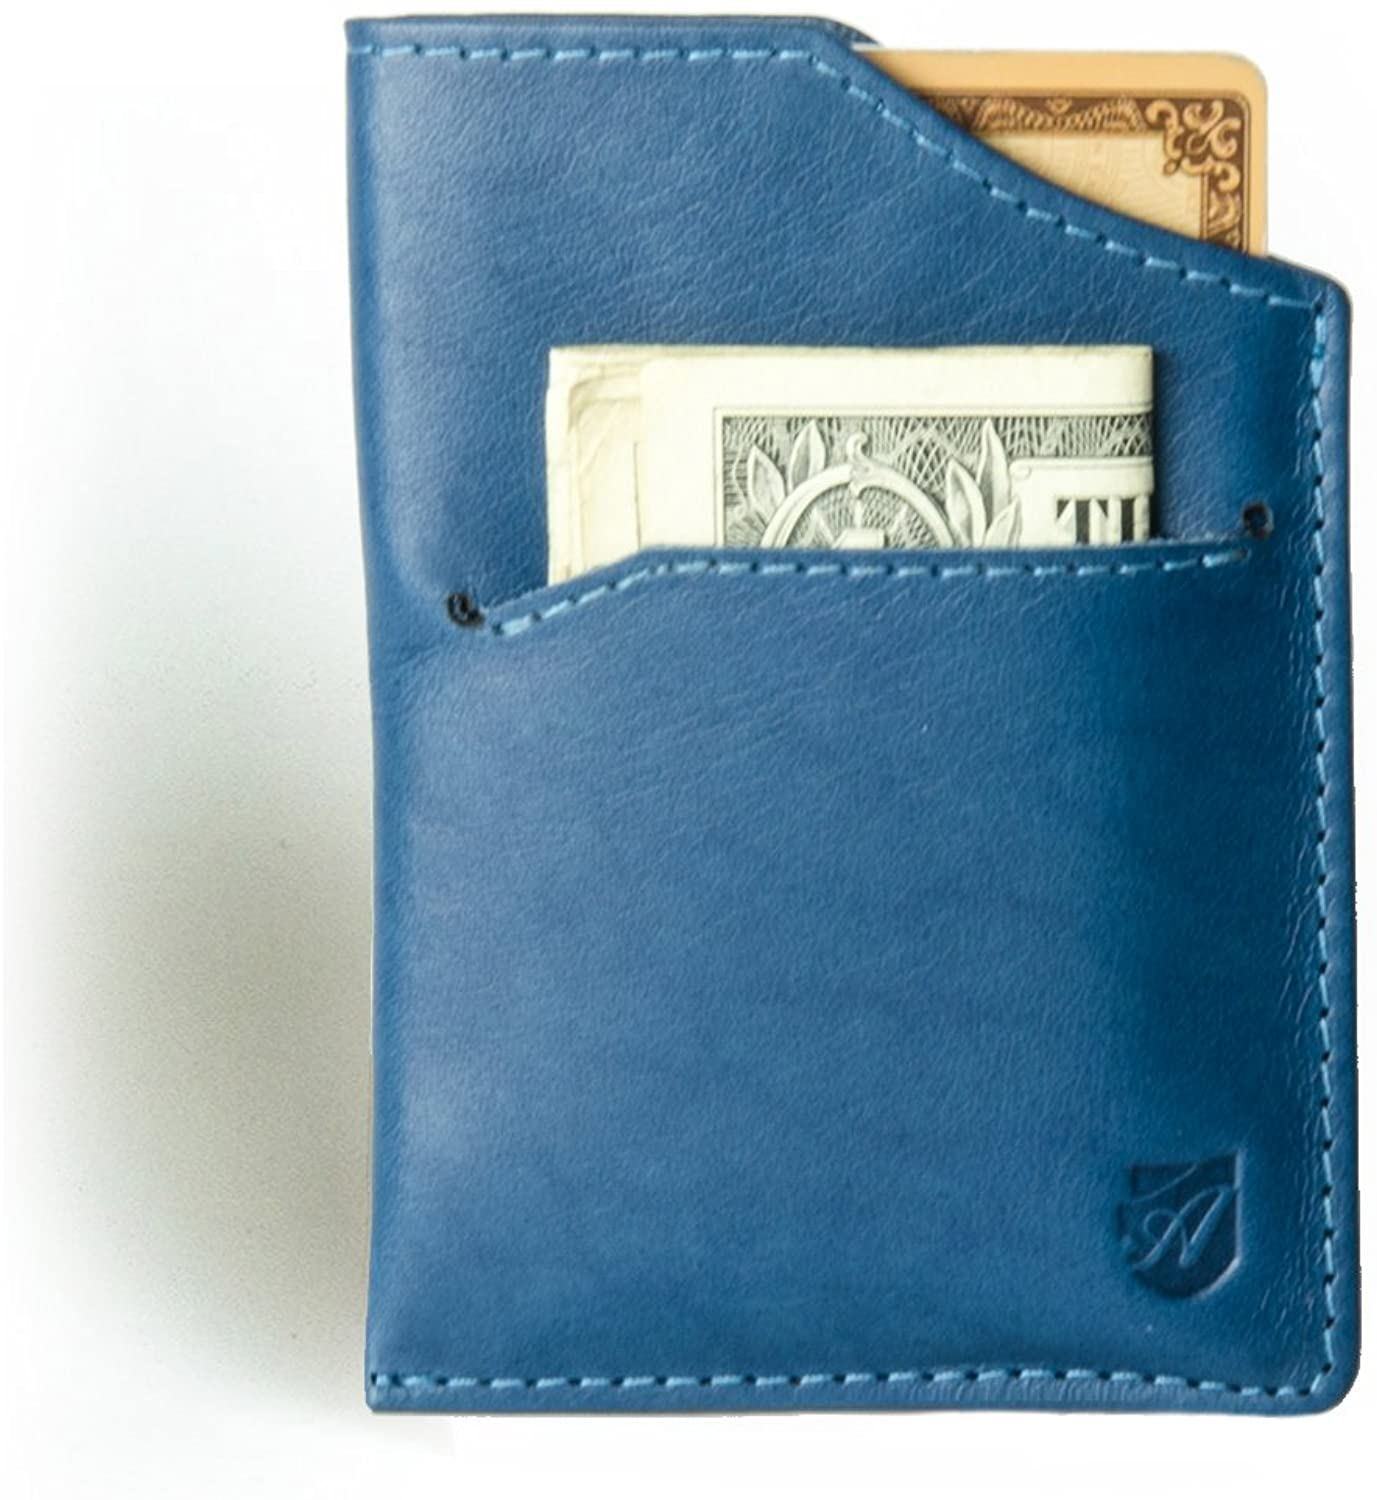 Minimalist Front Pocket Wallet (RFID-blocking) in Full Grain Tuscany Leather From Axess